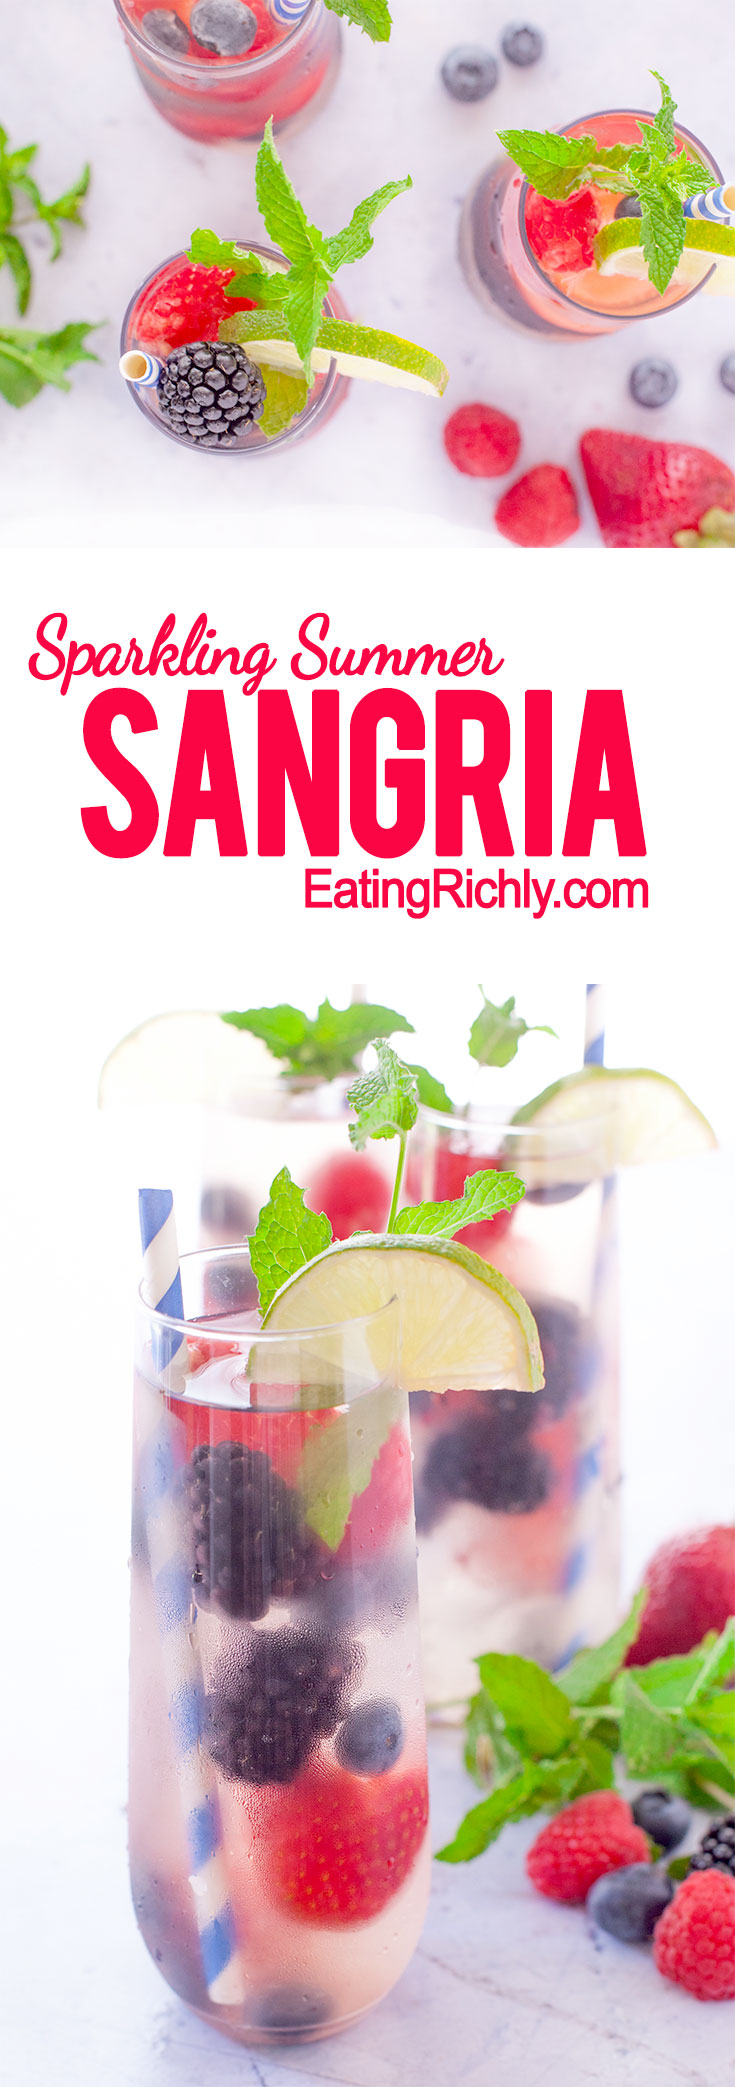 This refreshing summer sangria berry punch made with Riesling, sparkling wine, summer berries, fresh mint, triple sec, & lime. Perfect for backyard parties! From EatingRichly.com